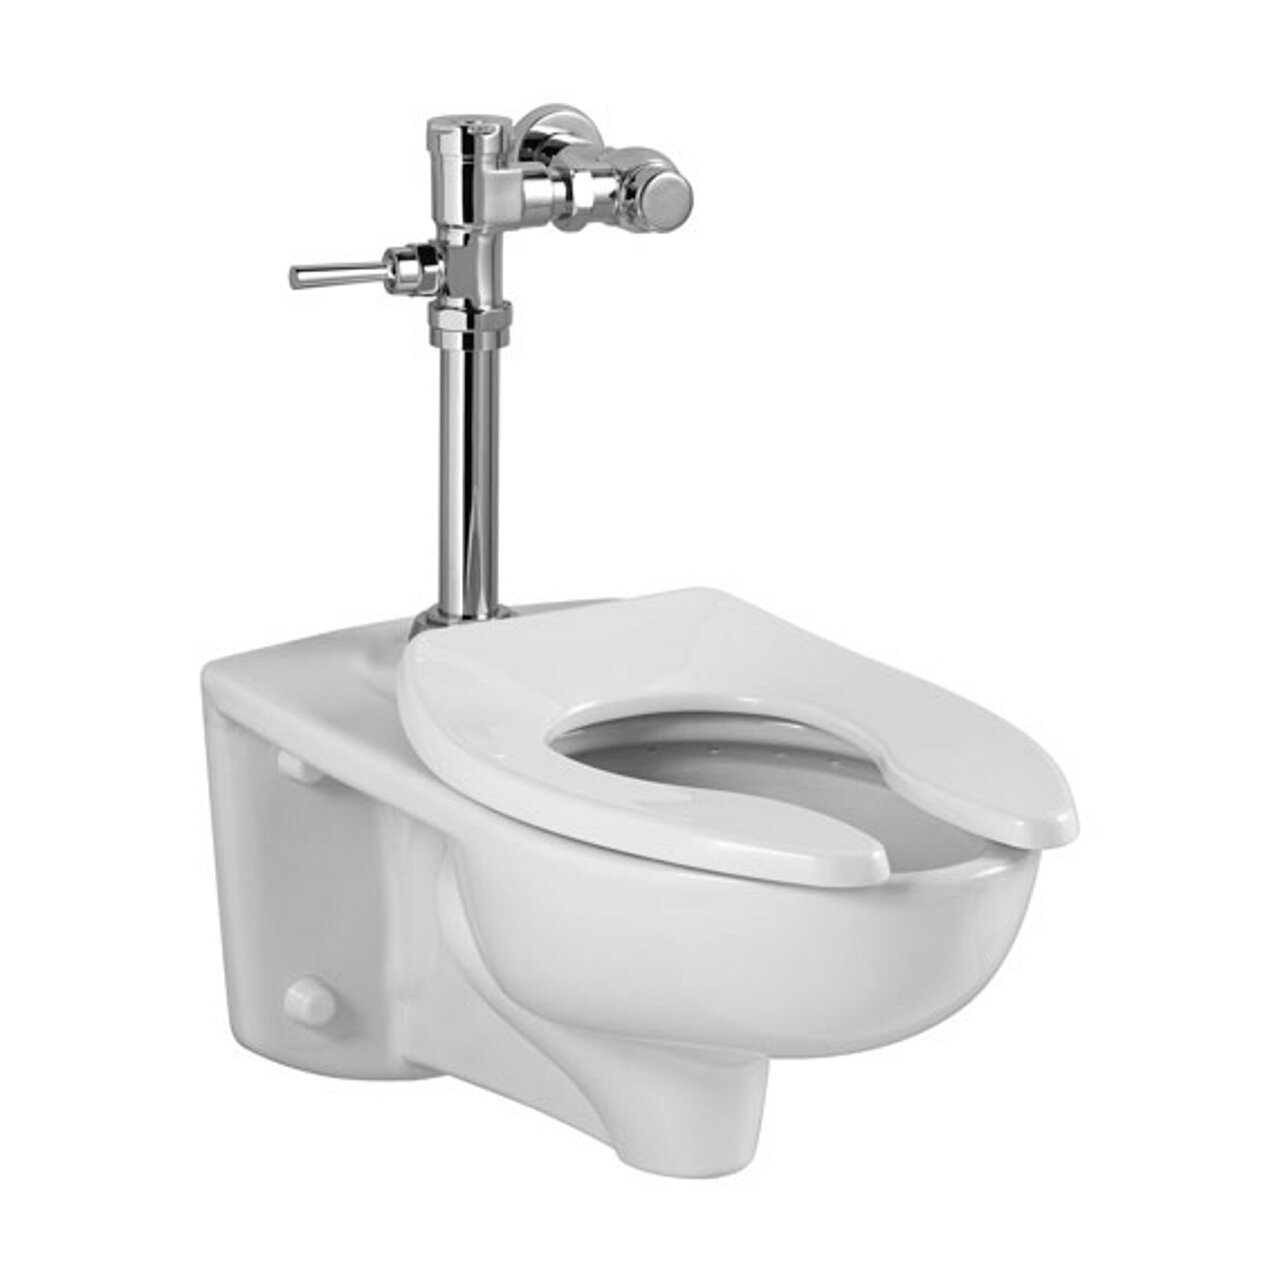 American Standard 2856.016.020 Afwall 1.6 GPF EverClean Toilet with Manual Flush Valve, White